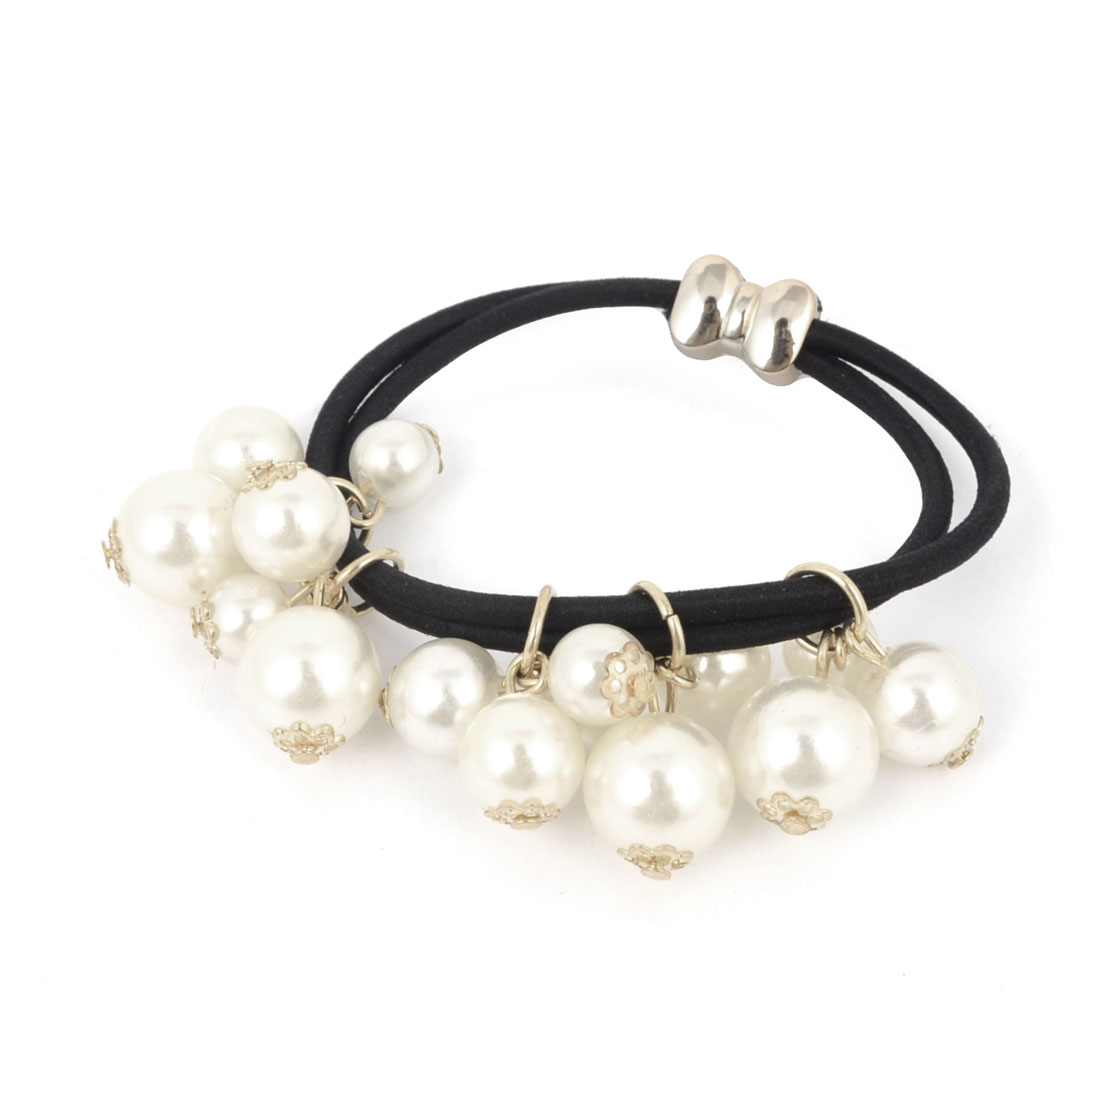 Imitation Pearls Accent Stretchy Elastic Rubber Hair Tie Ponytail Holder Black for Women